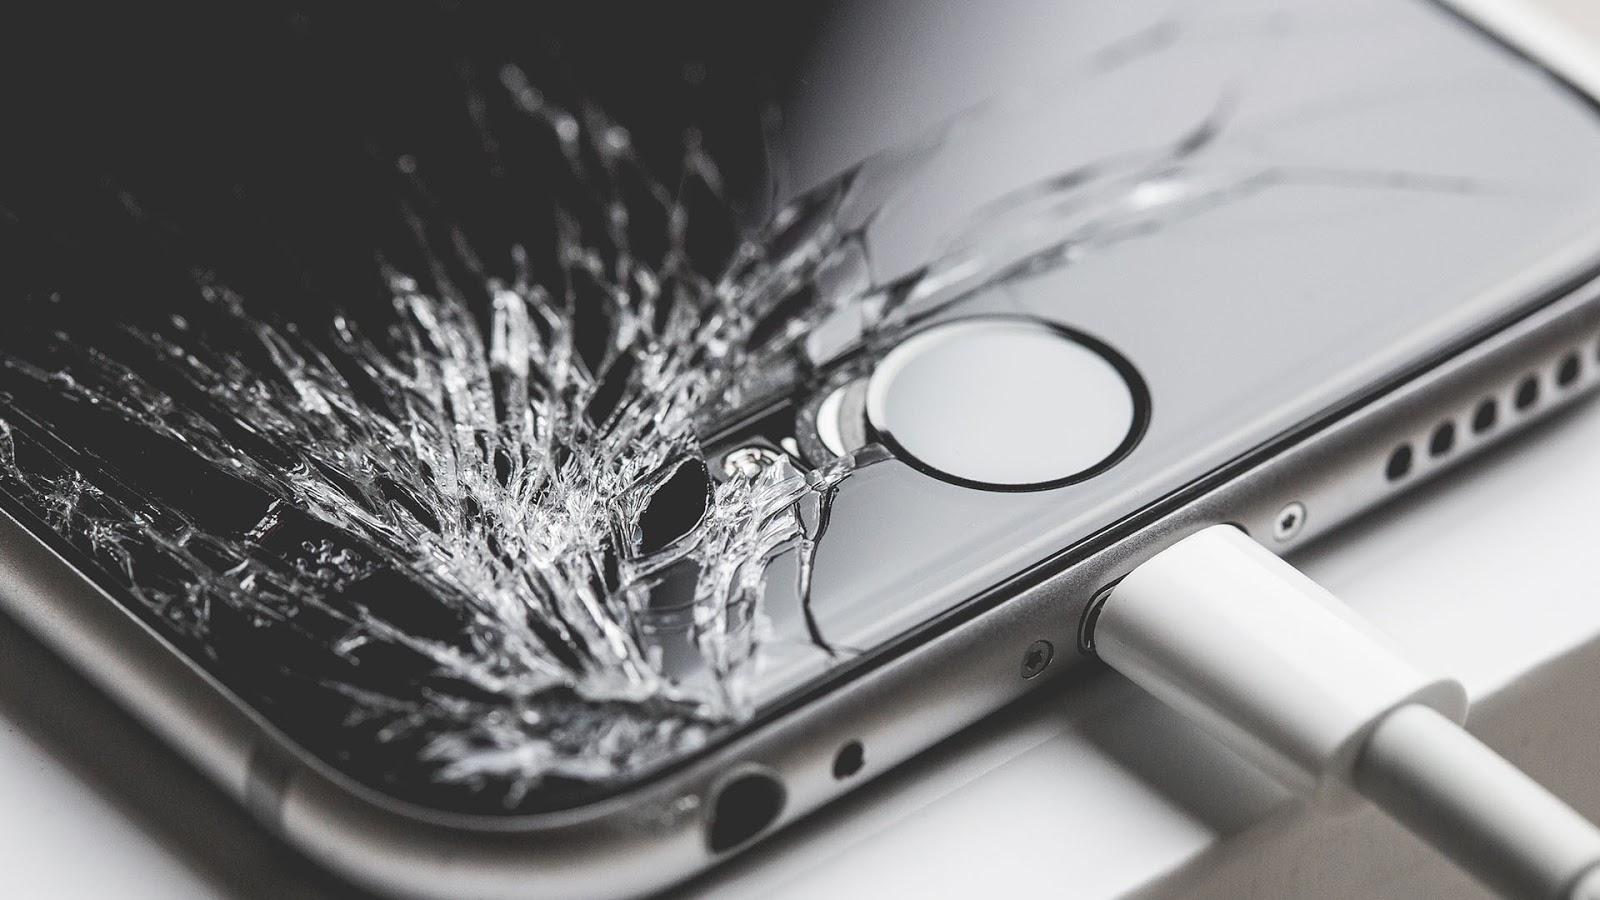 Most of the cell phone routine maintenance that you could rely on